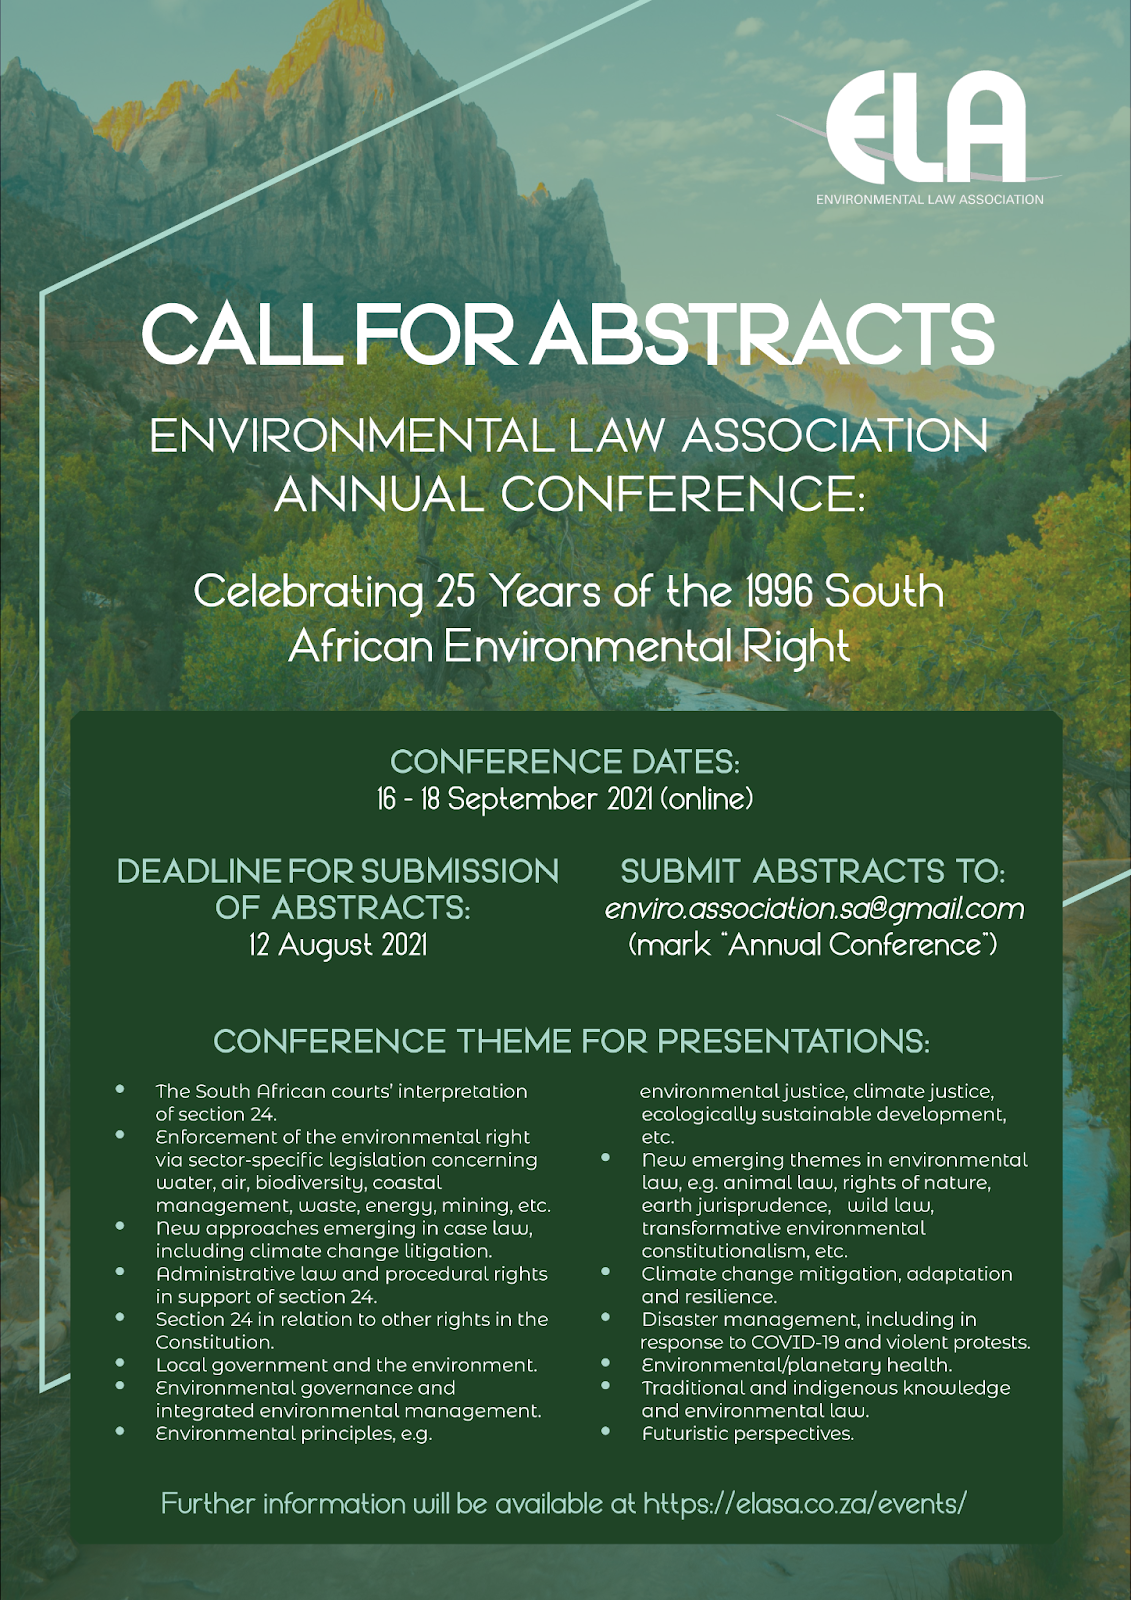 10th Annual Conference: Celebrating 25 Years of the 1996 South African Environmental Right